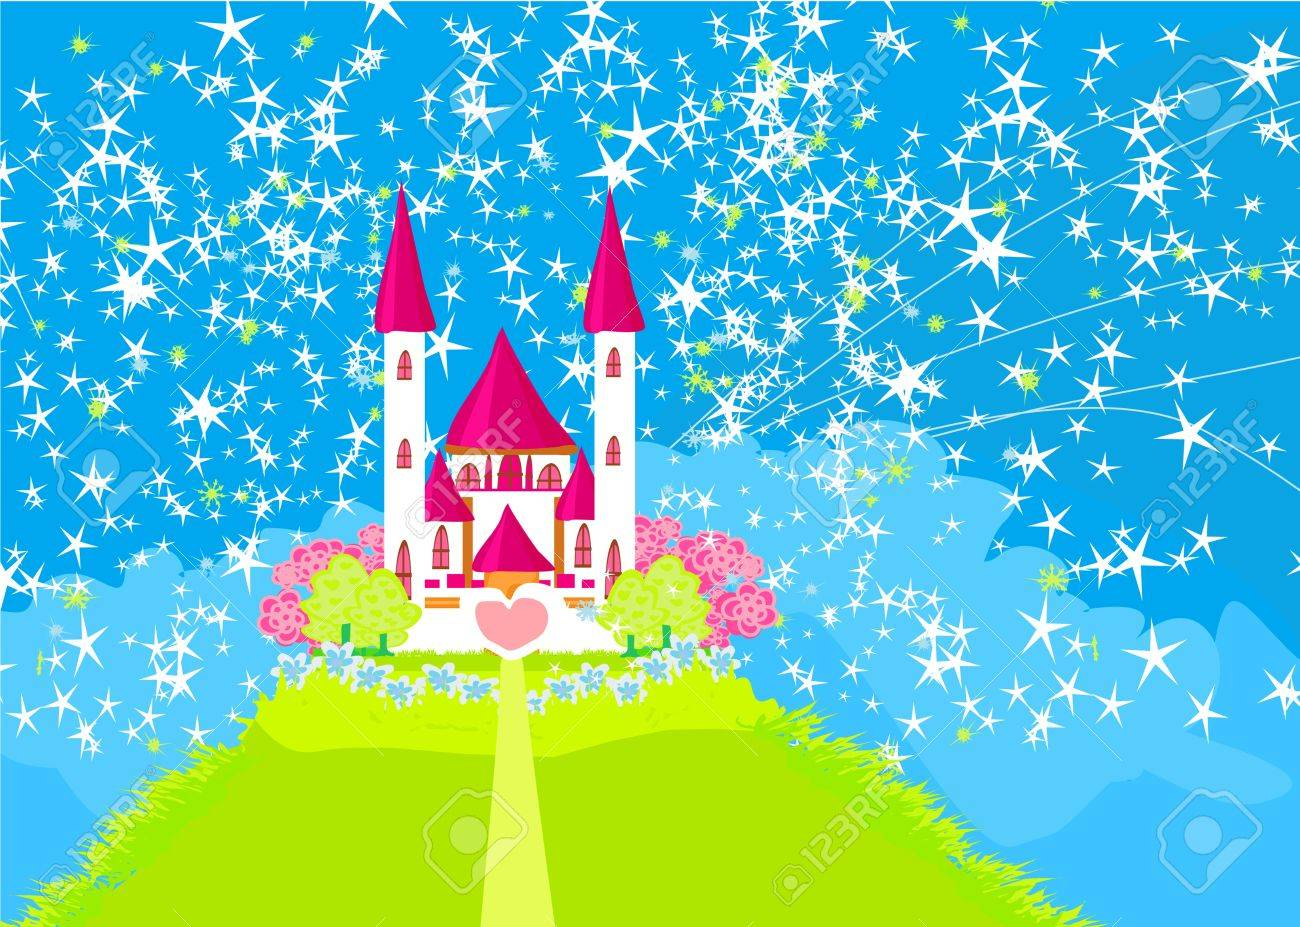 Magic Fairy Tale Princess Castle Stock Vector - 17192535